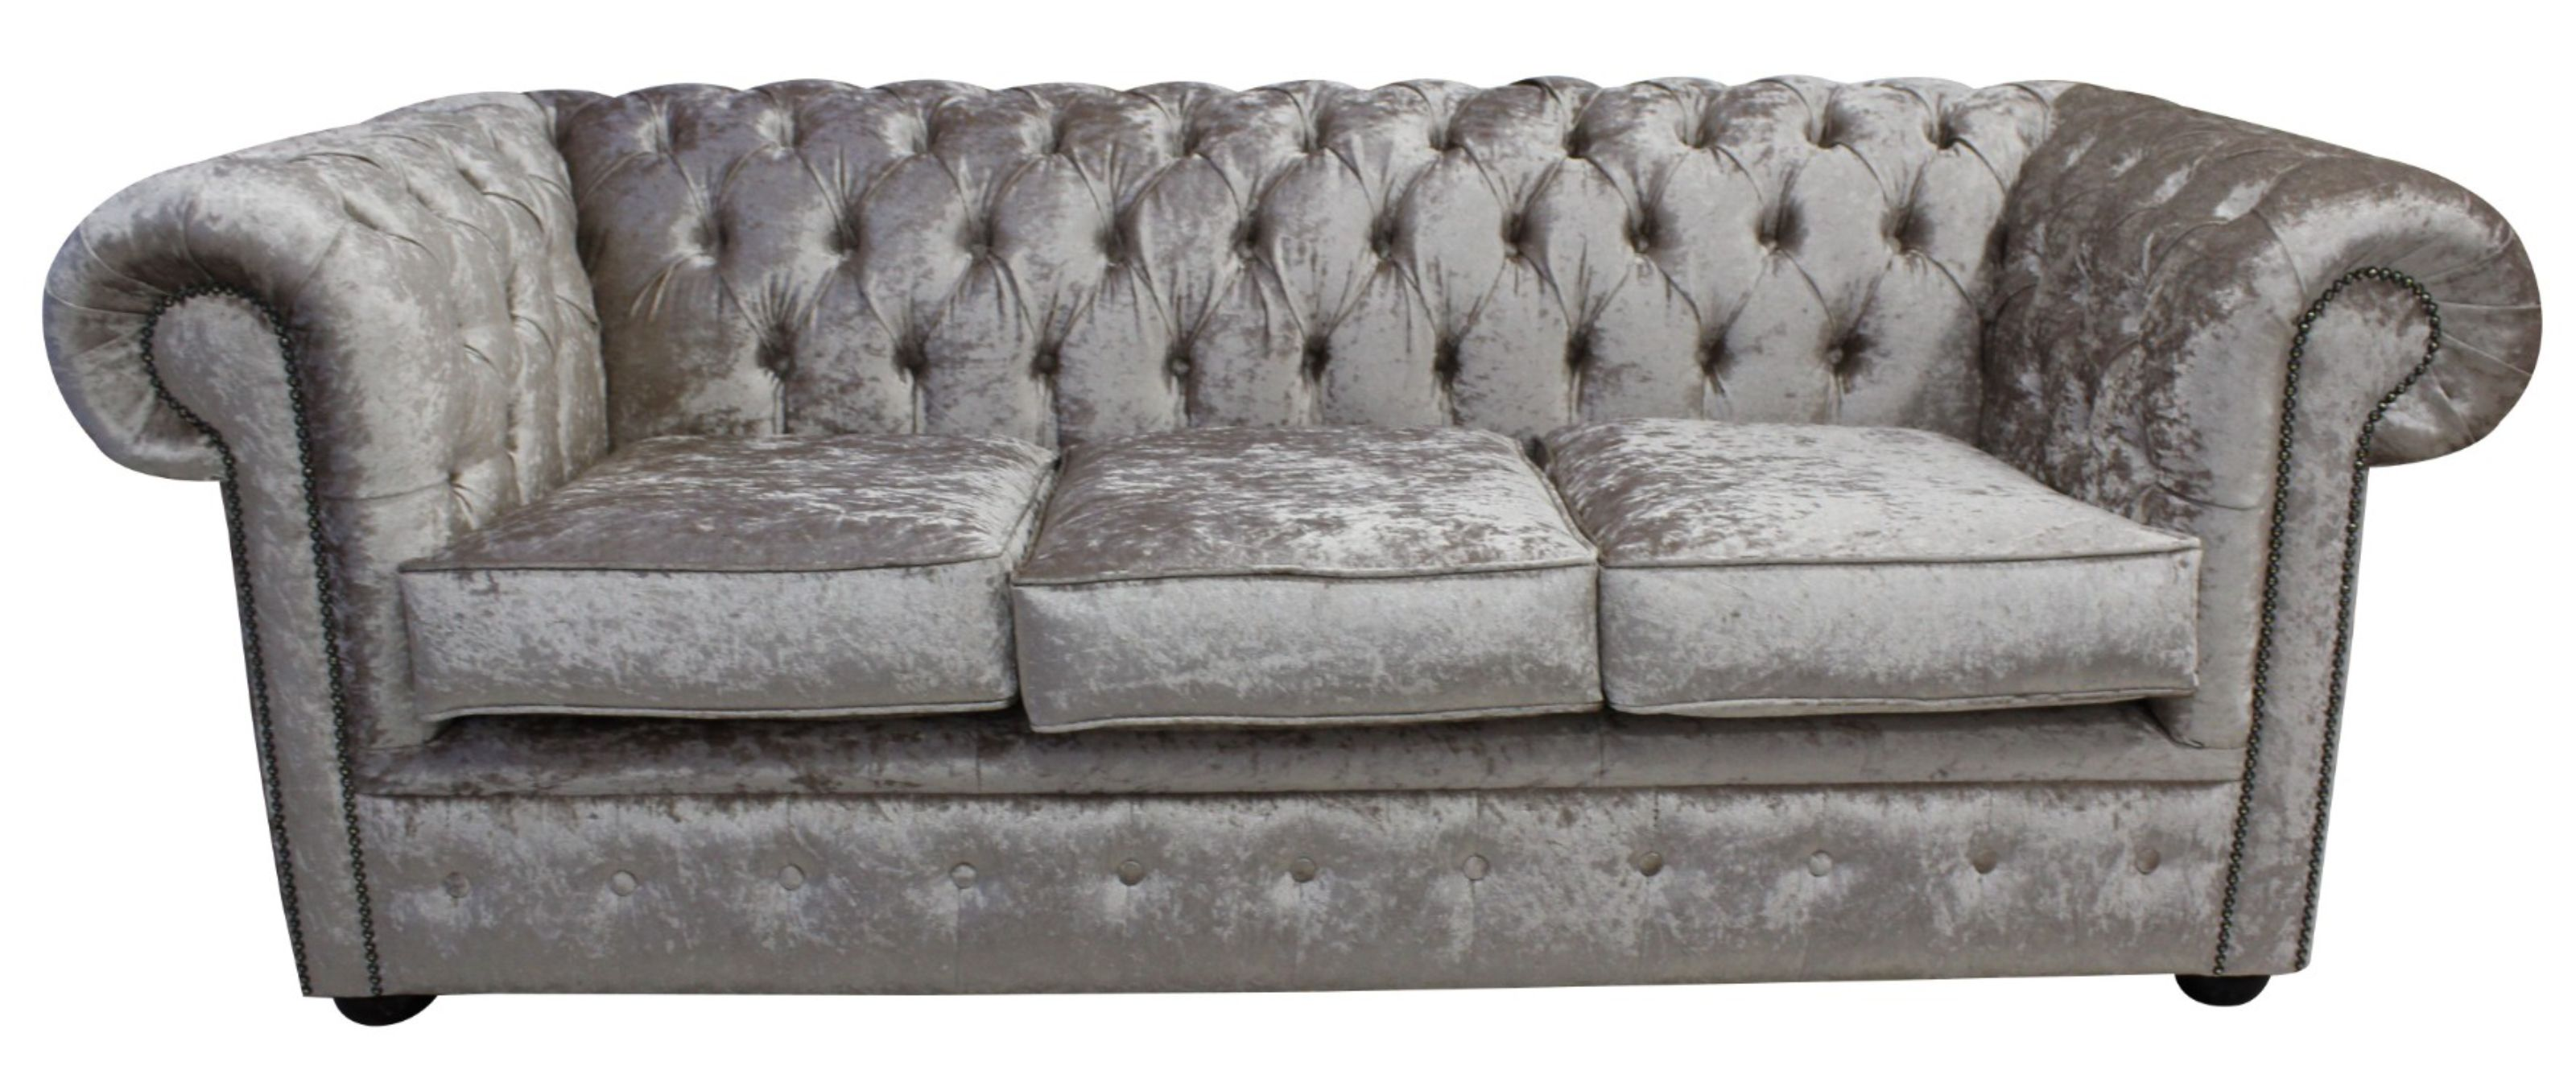 Picture of: Bexley 3 Seater Crushed Velvet Chesterfield Silver Bexley 3 Seater Crushed Velvet Chesterfield Silver Mink Velvet Chesterfield Designersofas4u